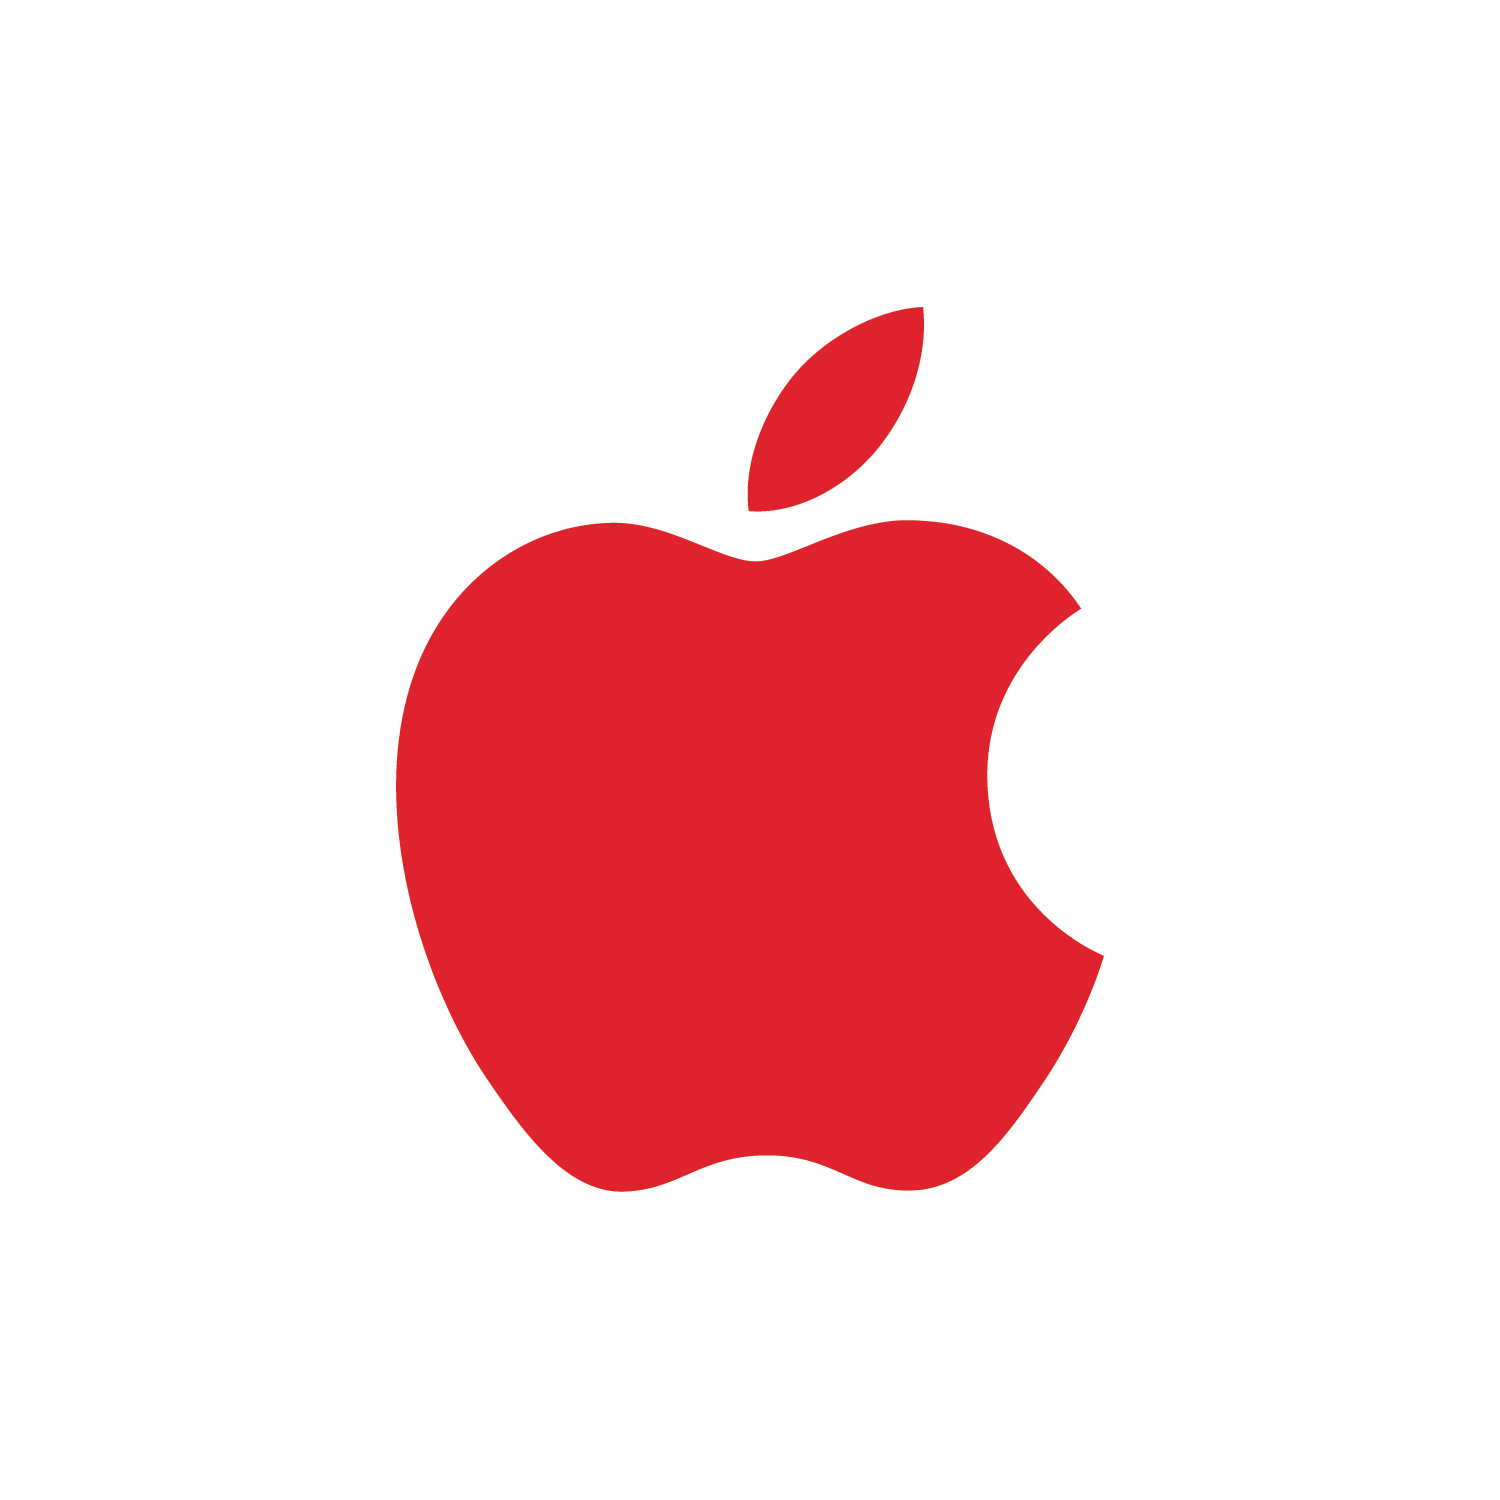 Apple Mobile Phones Plus Iphone Logo PNG Image